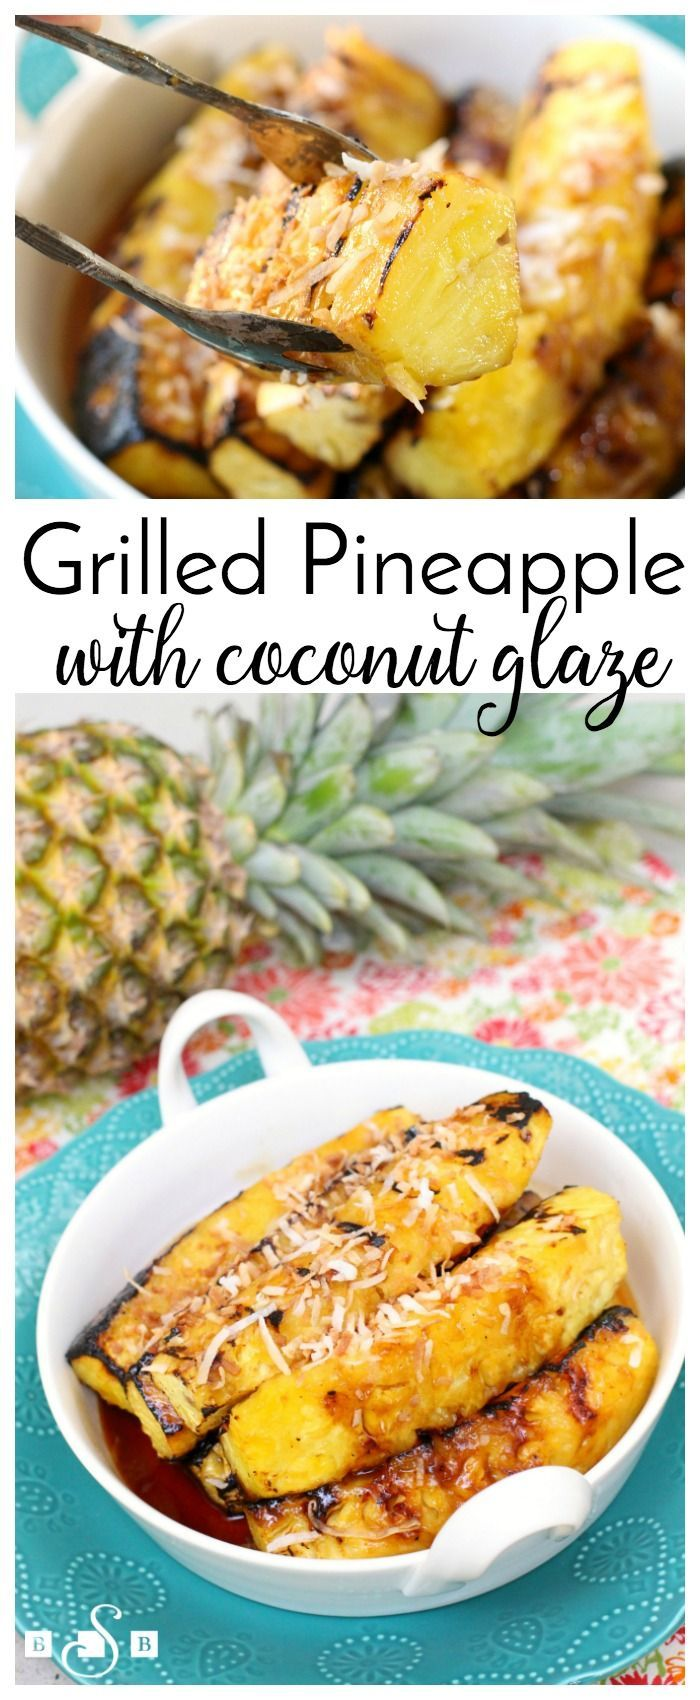 Grilled Pineapple with Coconut Glaze- served alongside chicken or topped with vanilla ice cream, this recipe for coconut pineapple is amazing! Butter With A Side of Bread AD #InspiredGathering